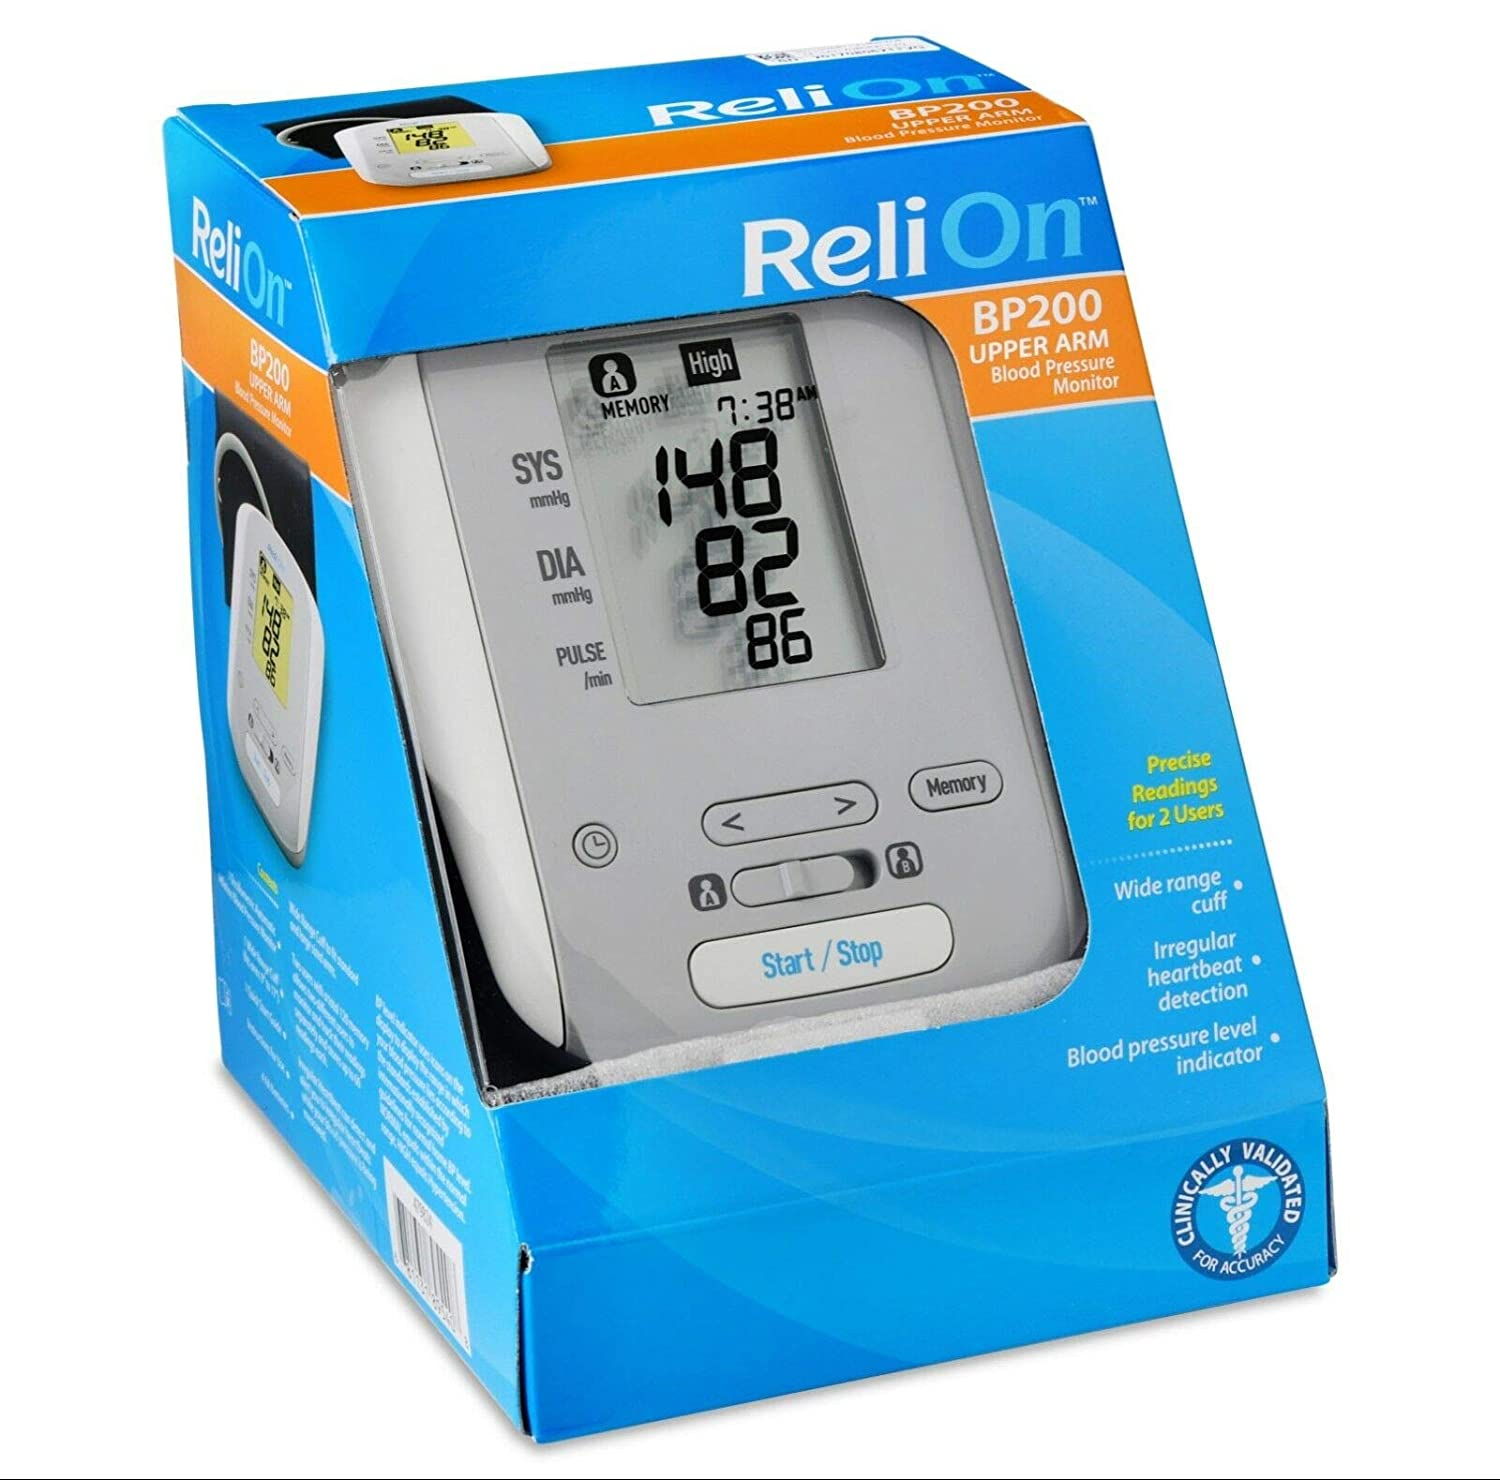 RELION RELI-ON AUTOMATIC BLOOD PRESSURE MONITOR HEM-741